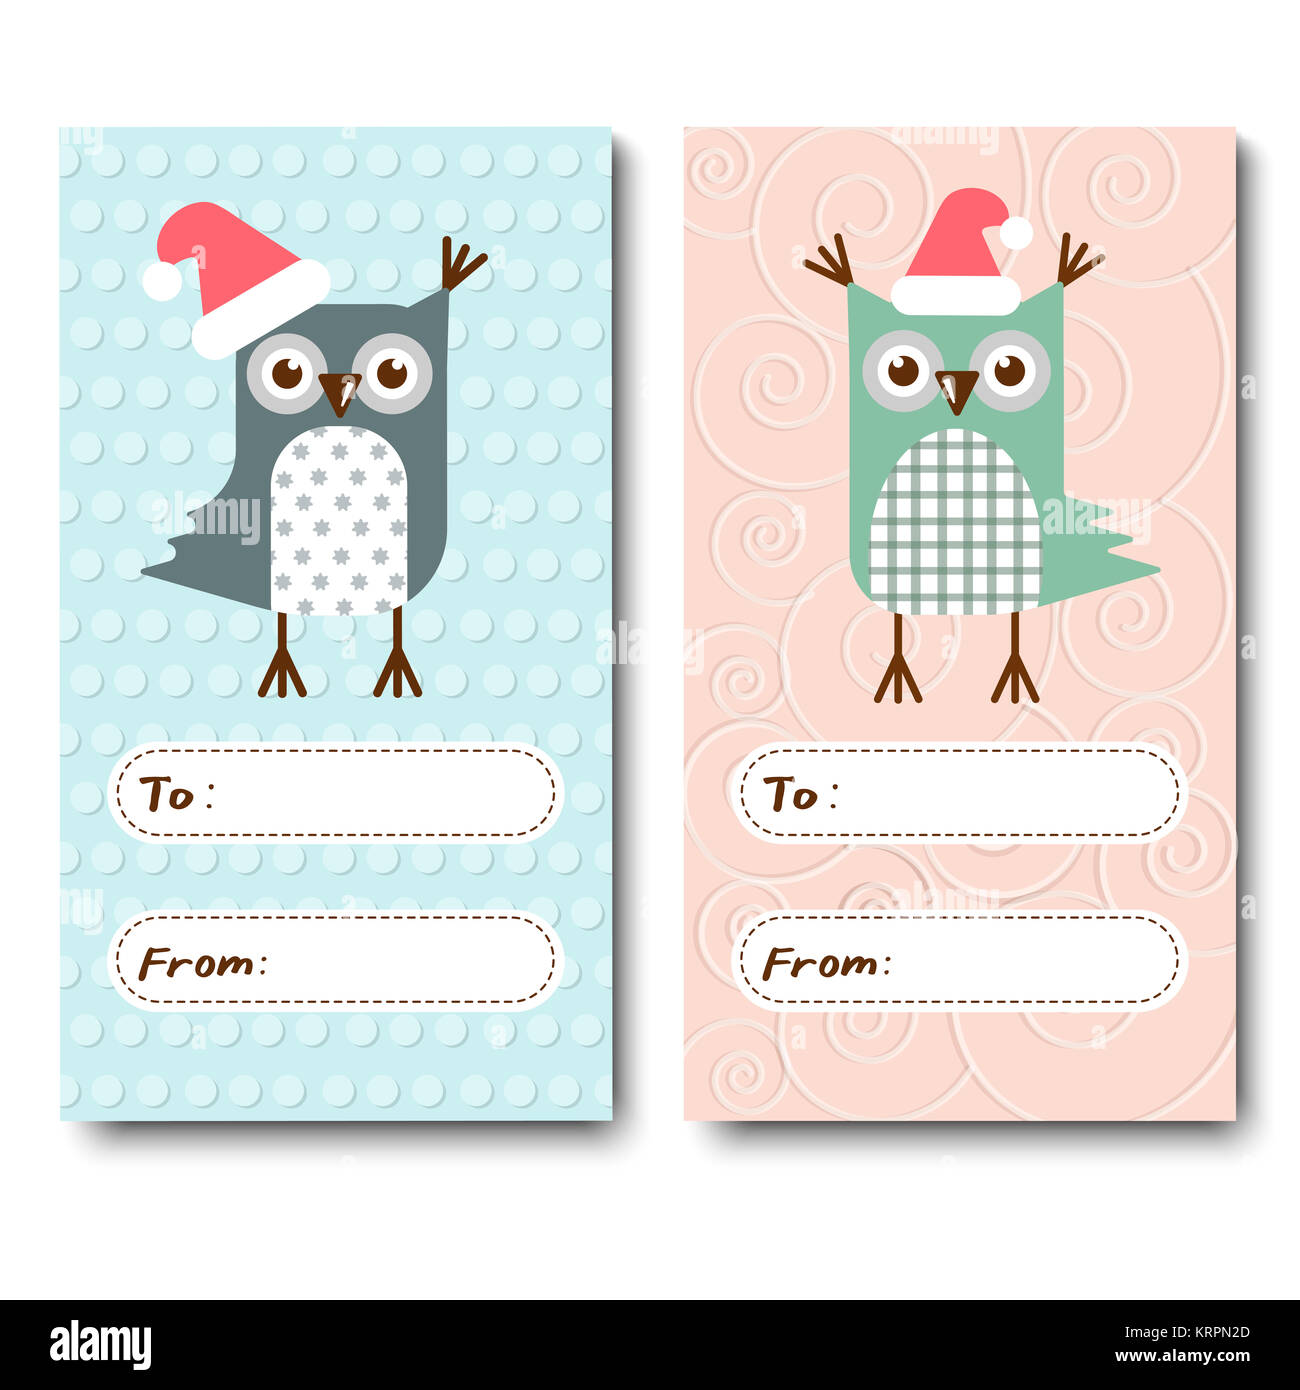 Owl Greeting Cards Stock Photos & Owl Greeting Cards Stock Images ...